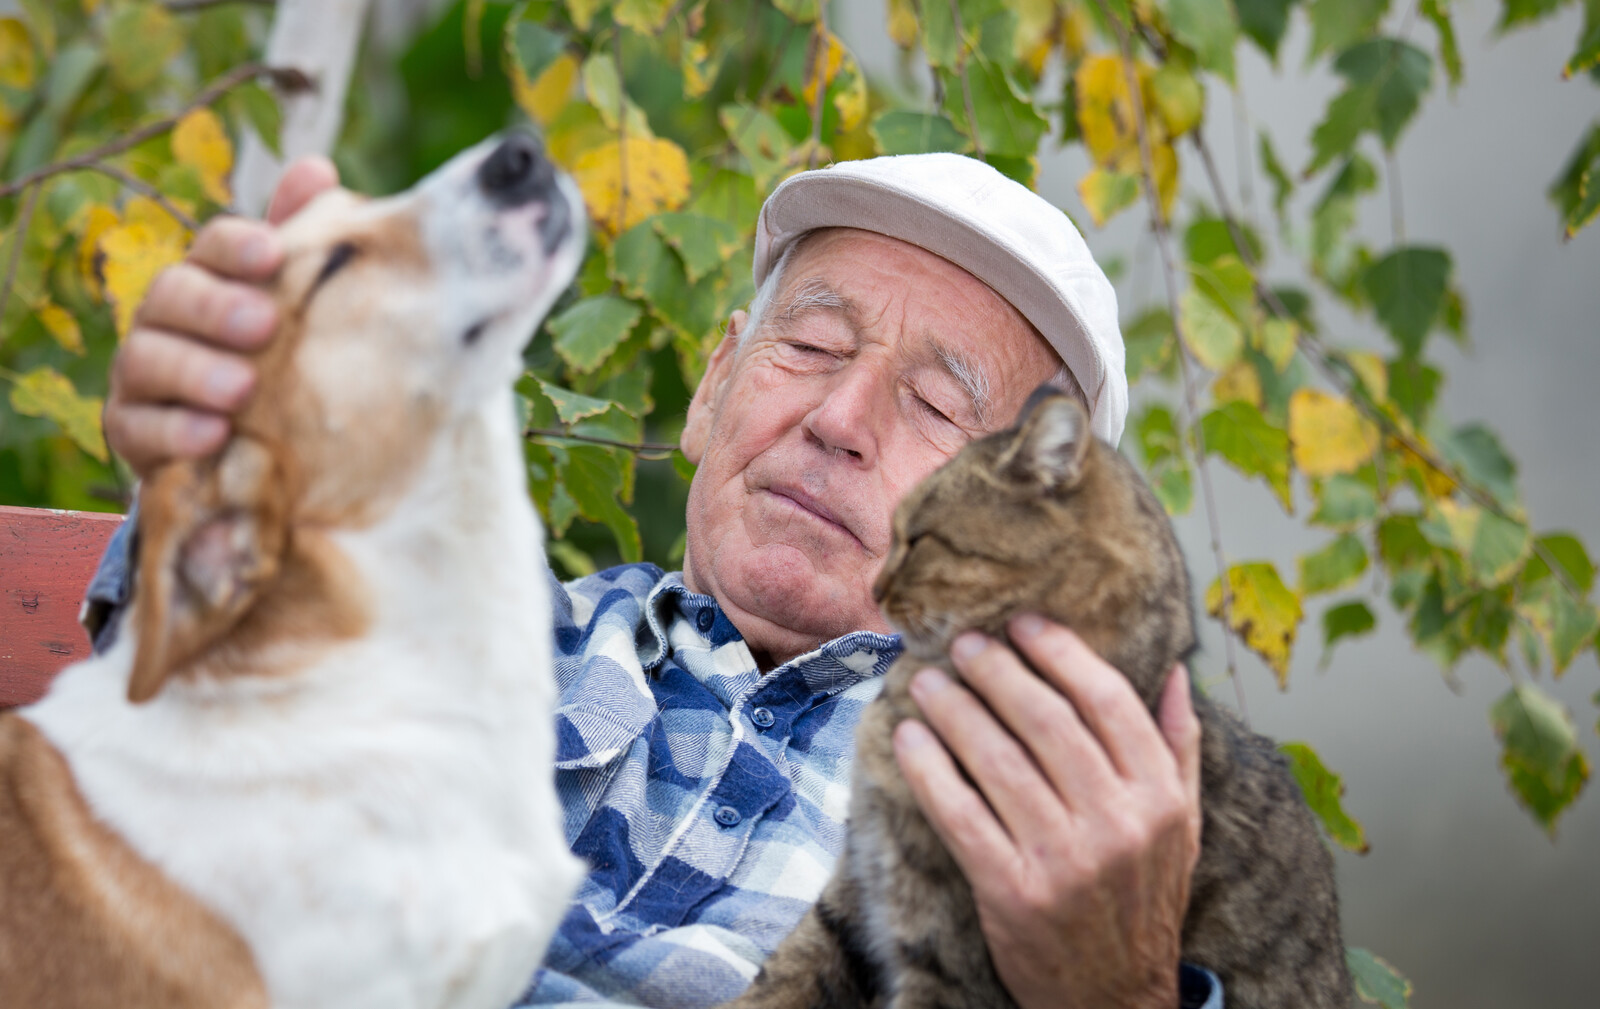 Senior man enjoying time with his cat and dog, cuddling them in and outdoor courtyard